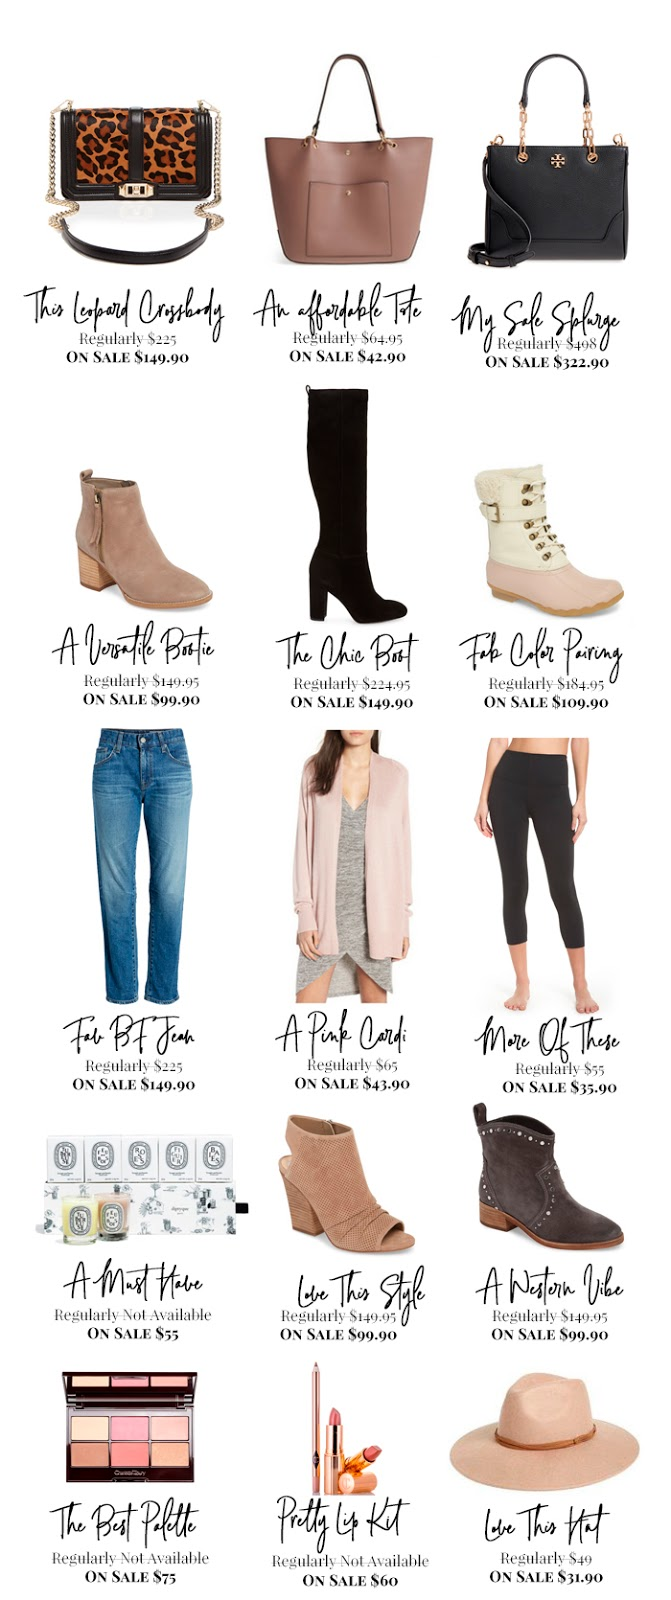 afec2bec355 2018 Nordstrom Anniversary Sale Early Access Starts Now  15 Things I ...